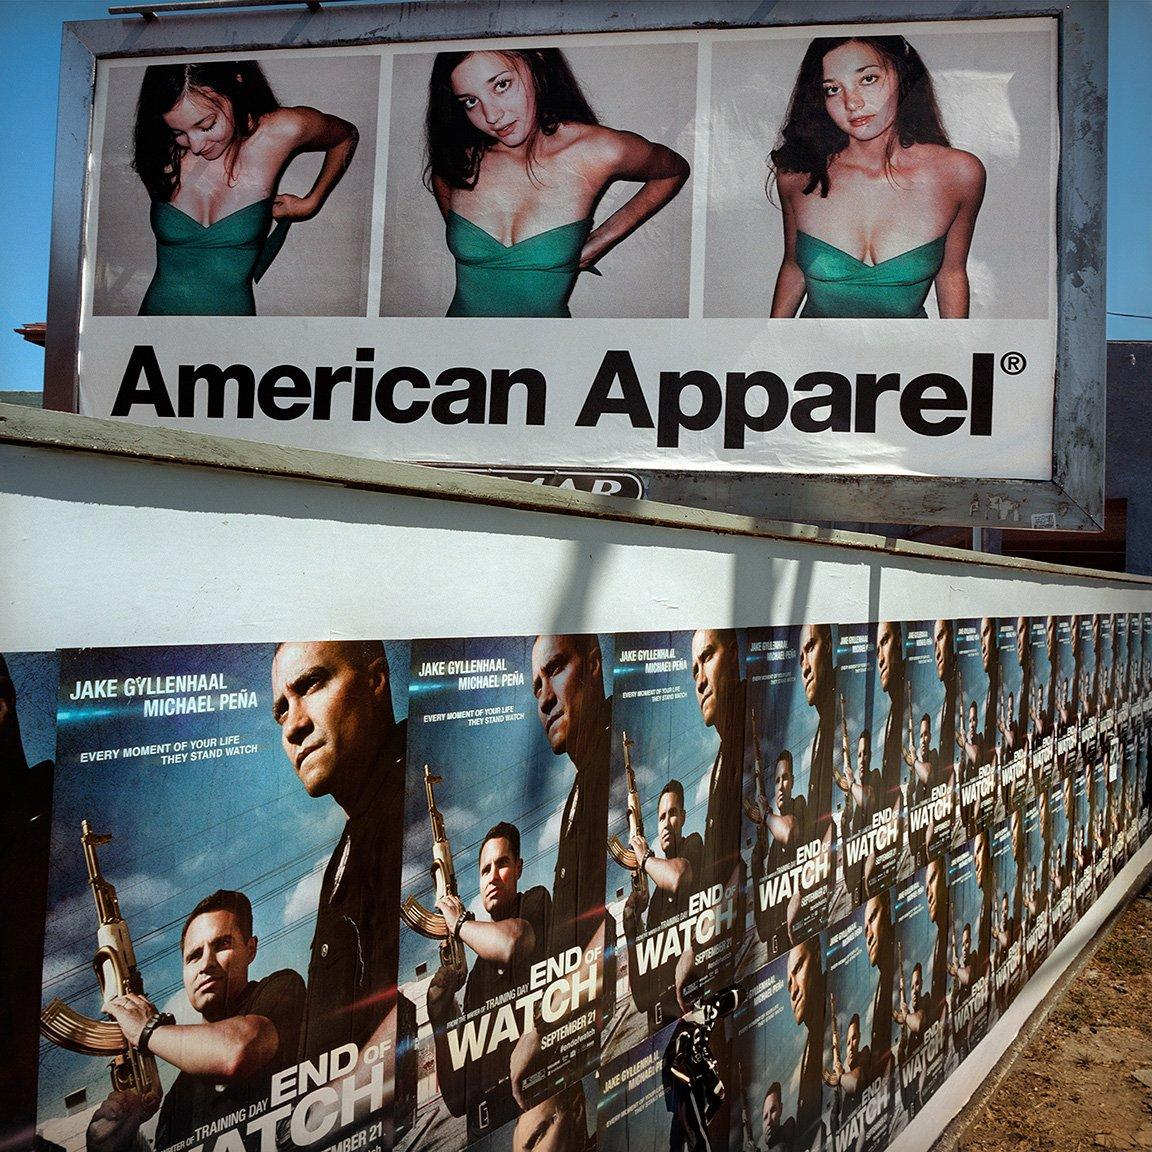 15-TheAmericanApparel-ThomasAlleman-Website-121013